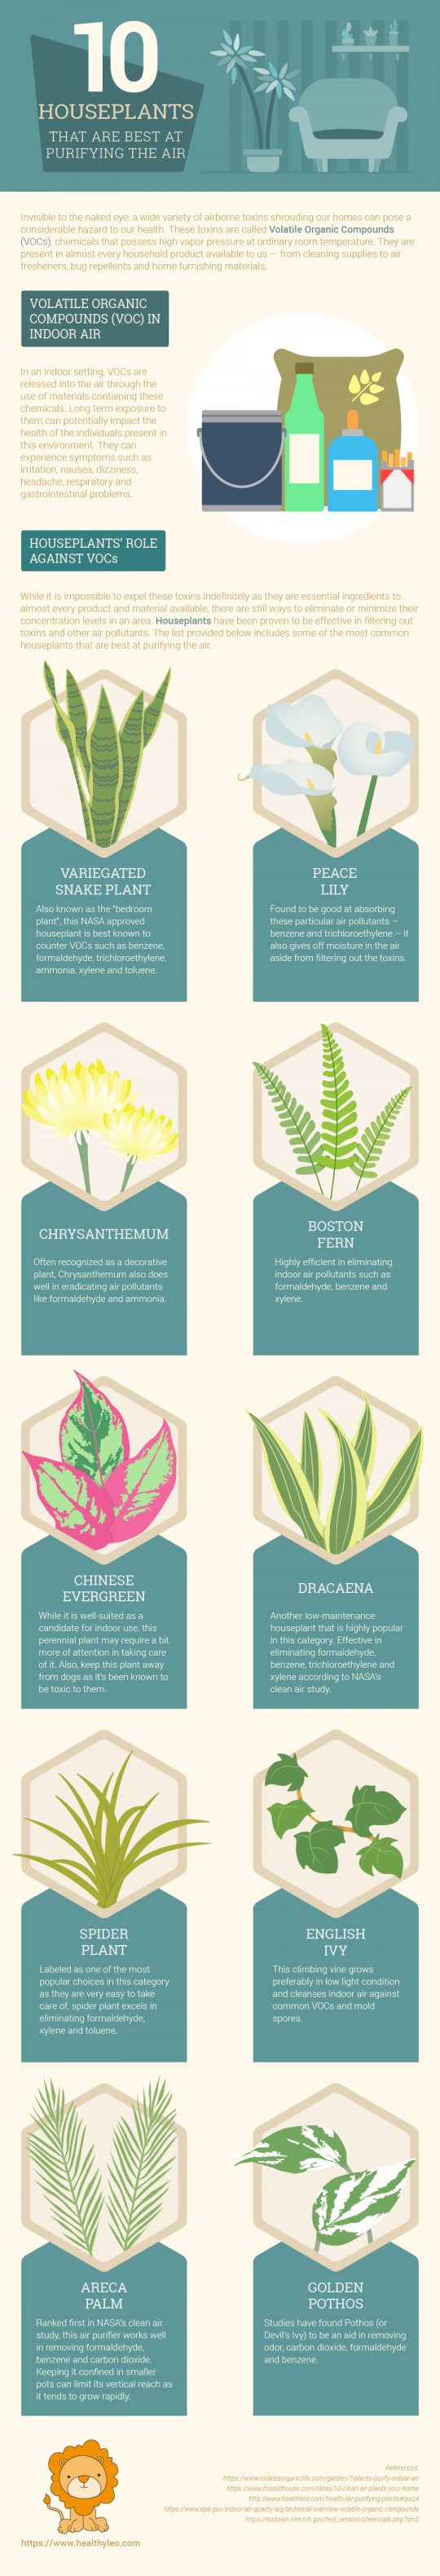 Top 10 Houseplants for Purifying the Air